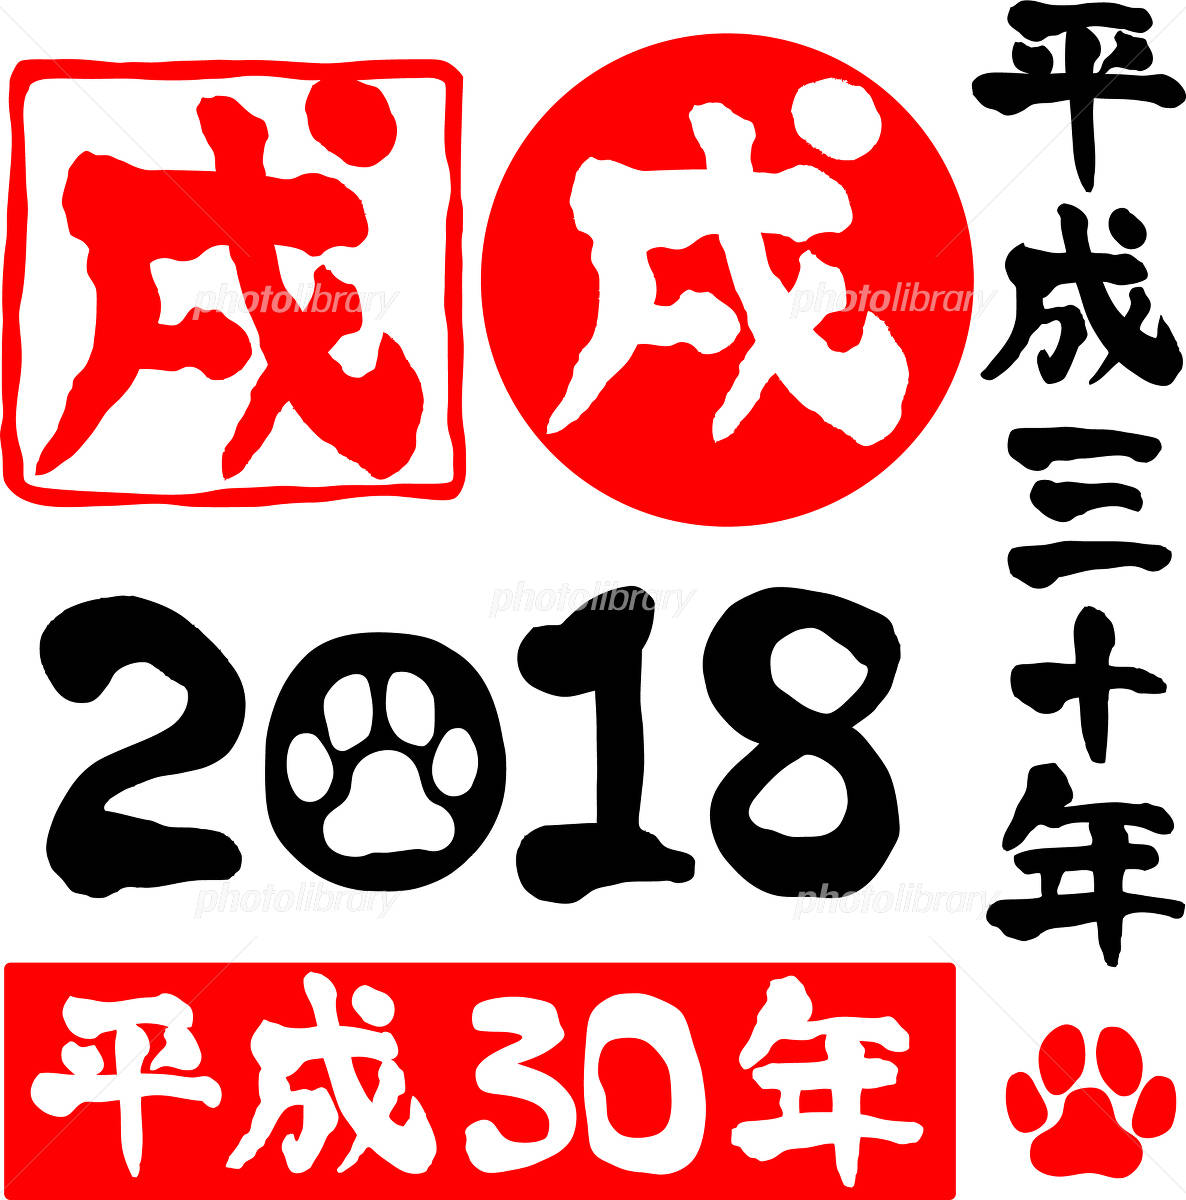 2018. year of the dog 2018 dog meat ball character material stamp style イラスト素材